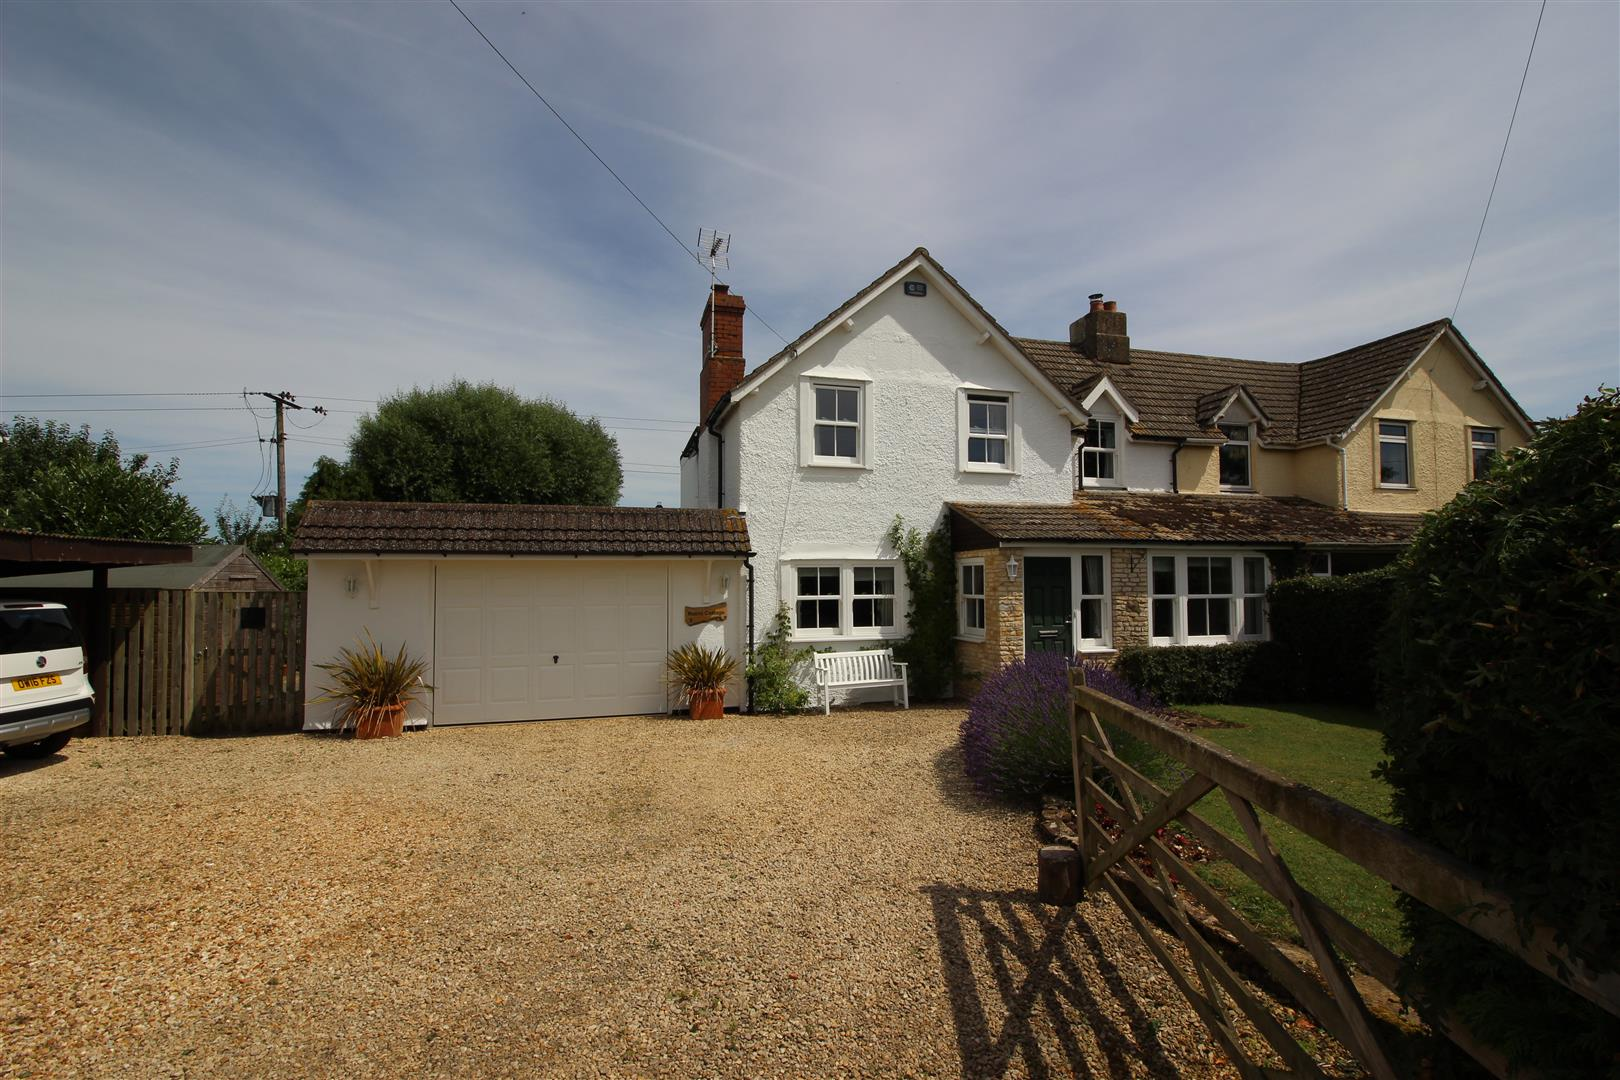 4 Bedrooms Semi Detached House for sale in Dodford Lane, Christian Malford